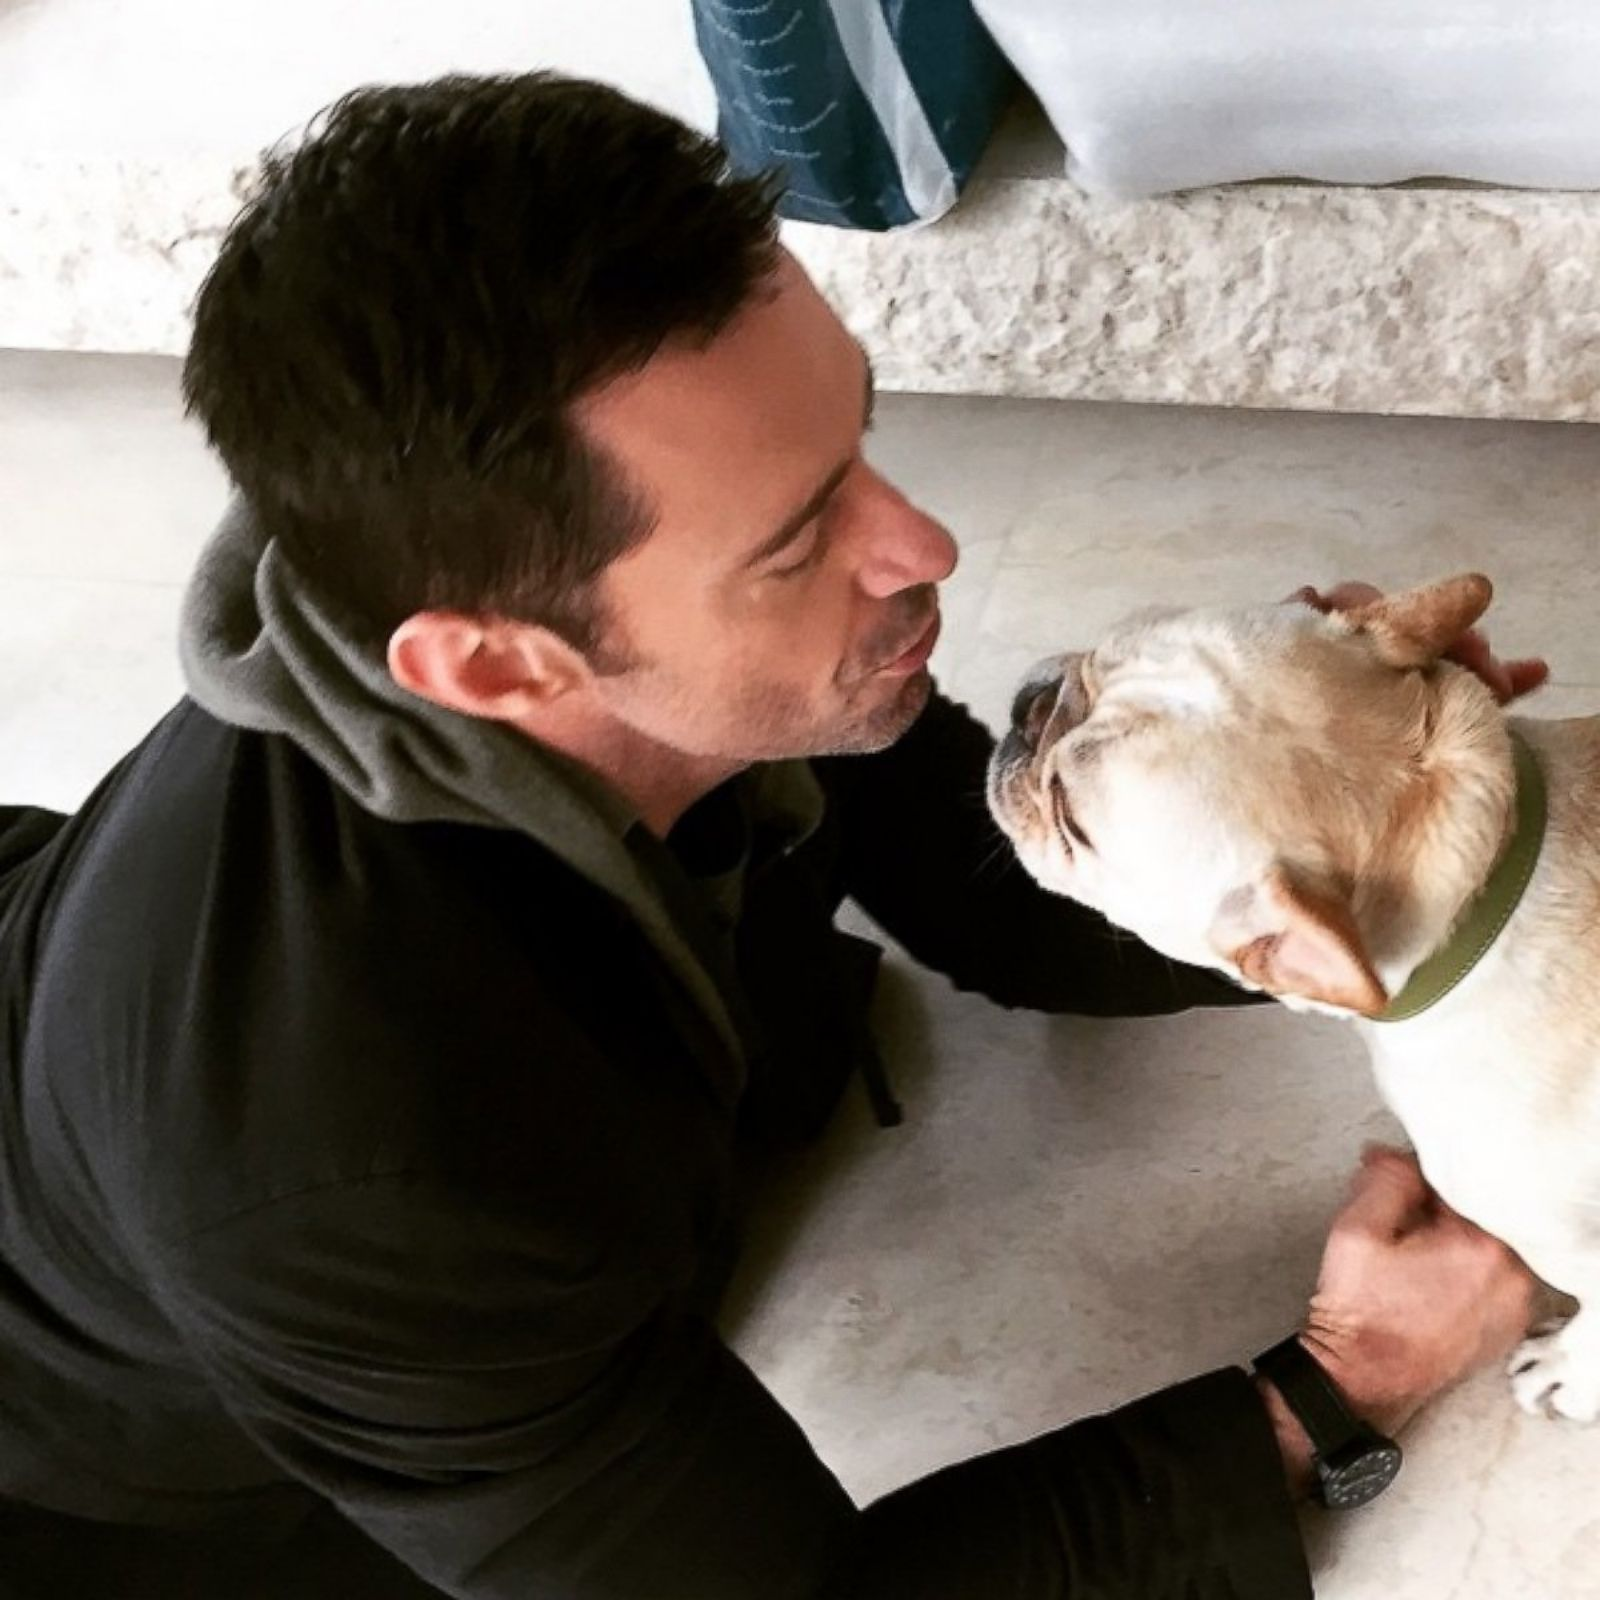 15 Reasons Hugh Jackman And His French Bulldogs Are The Only Things That Matter On The Internet